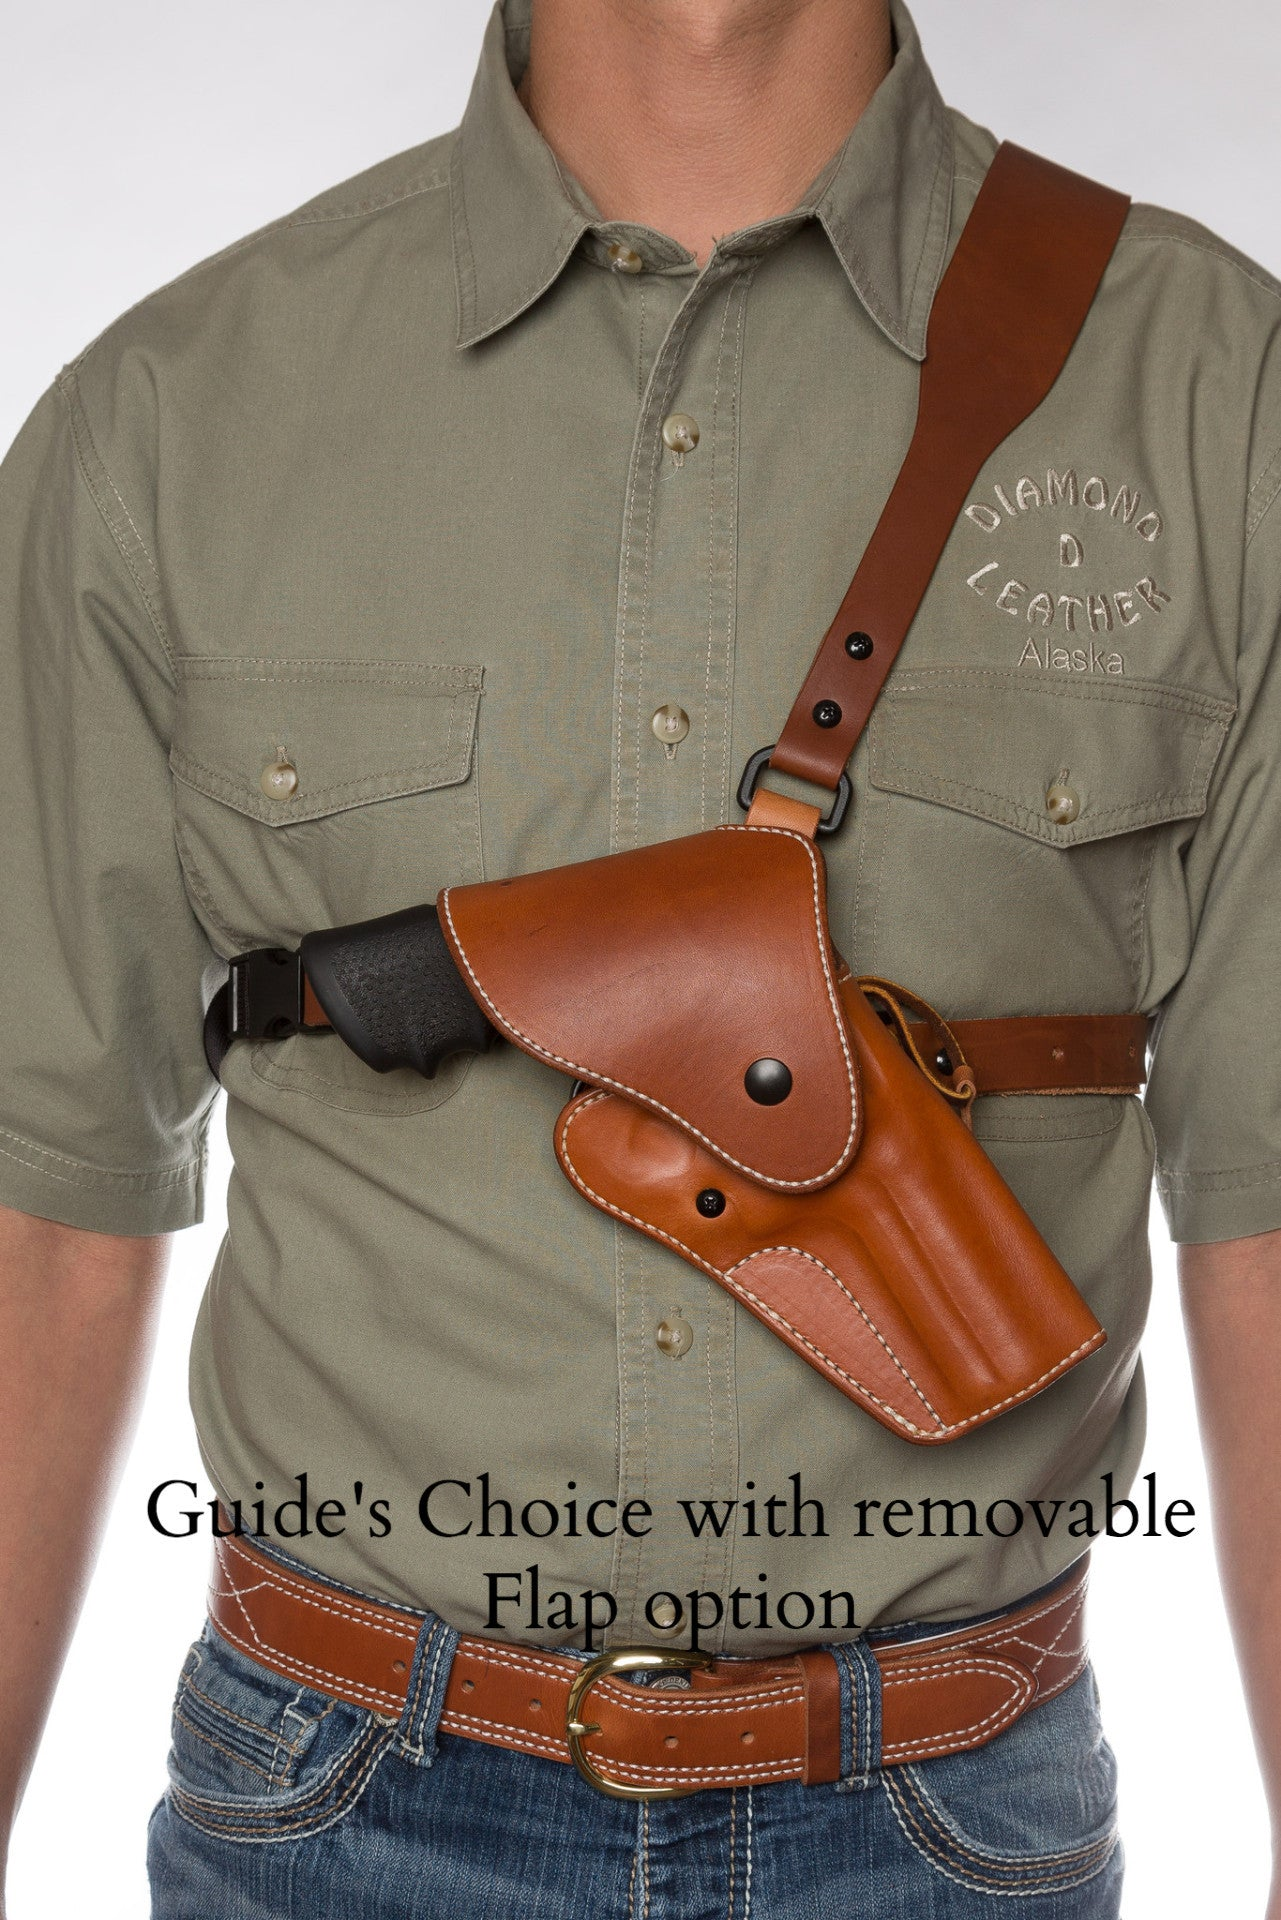 Guides Choice Chest Holster as well Safety Icons Symbols besides Frozen Turns 5 moreover Watch likewise Taotao 50cc Scooter Wiring Diagram. on dog harness